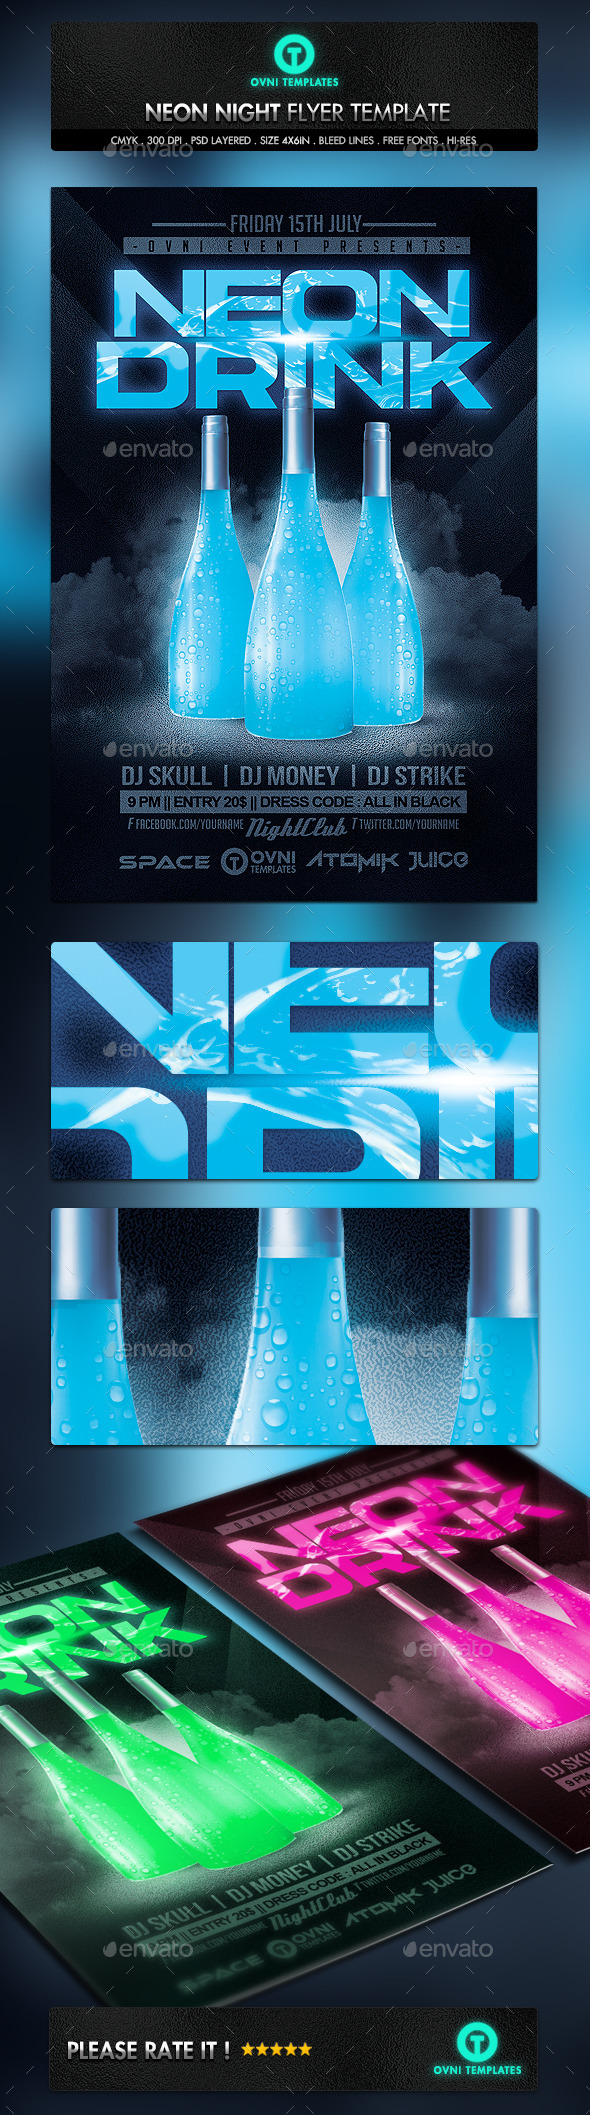 GraphicRiver Neon Drink Flyer Template 10988219